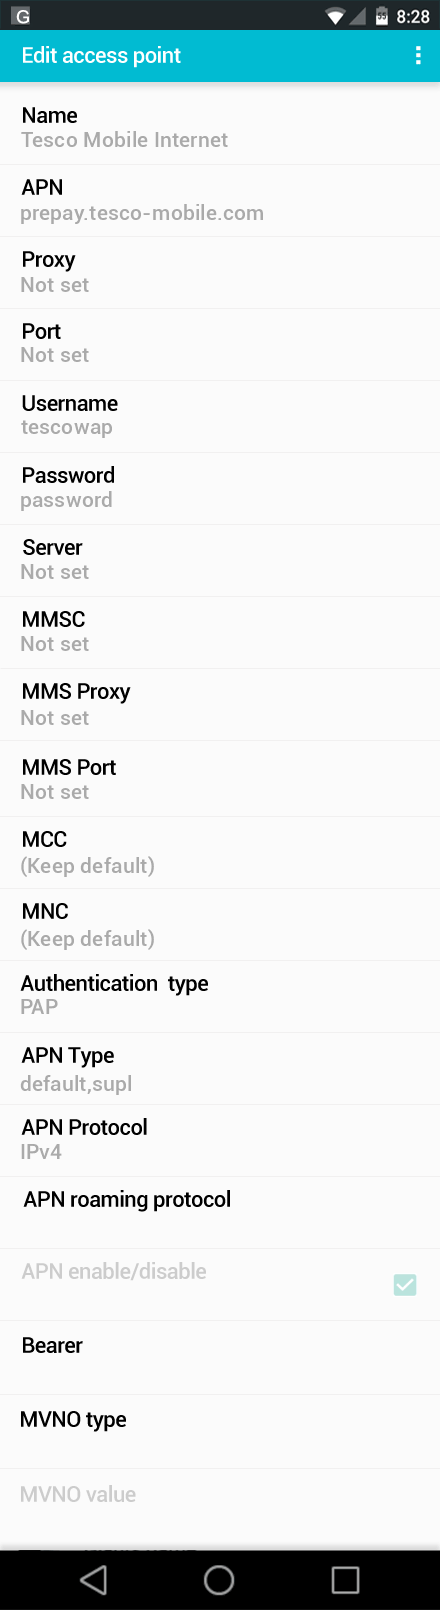 Tesco Mobile Internet APN settings for Android screenshot